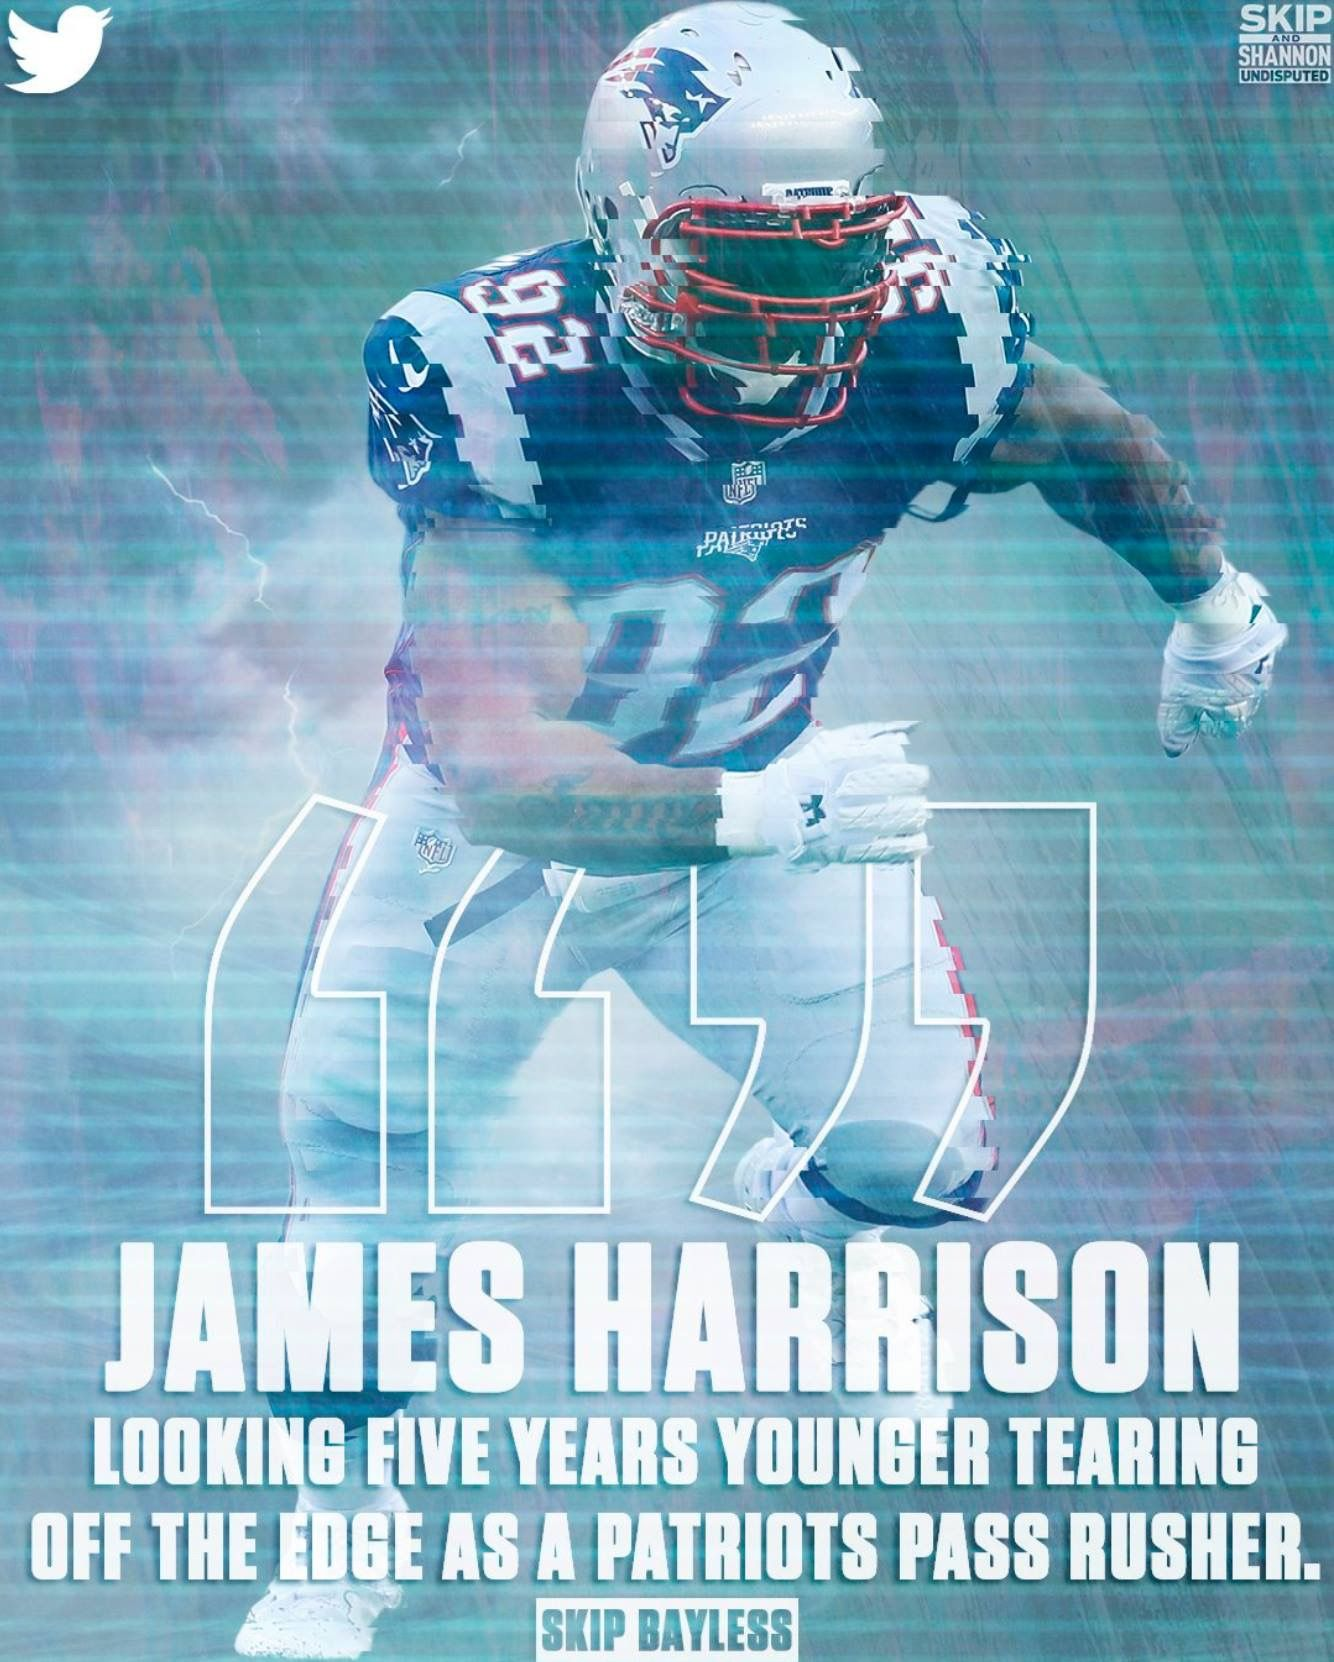 James Harrison Now With The Patriots Coming Over From The Steelers James Harrison New England Patriots Patriots